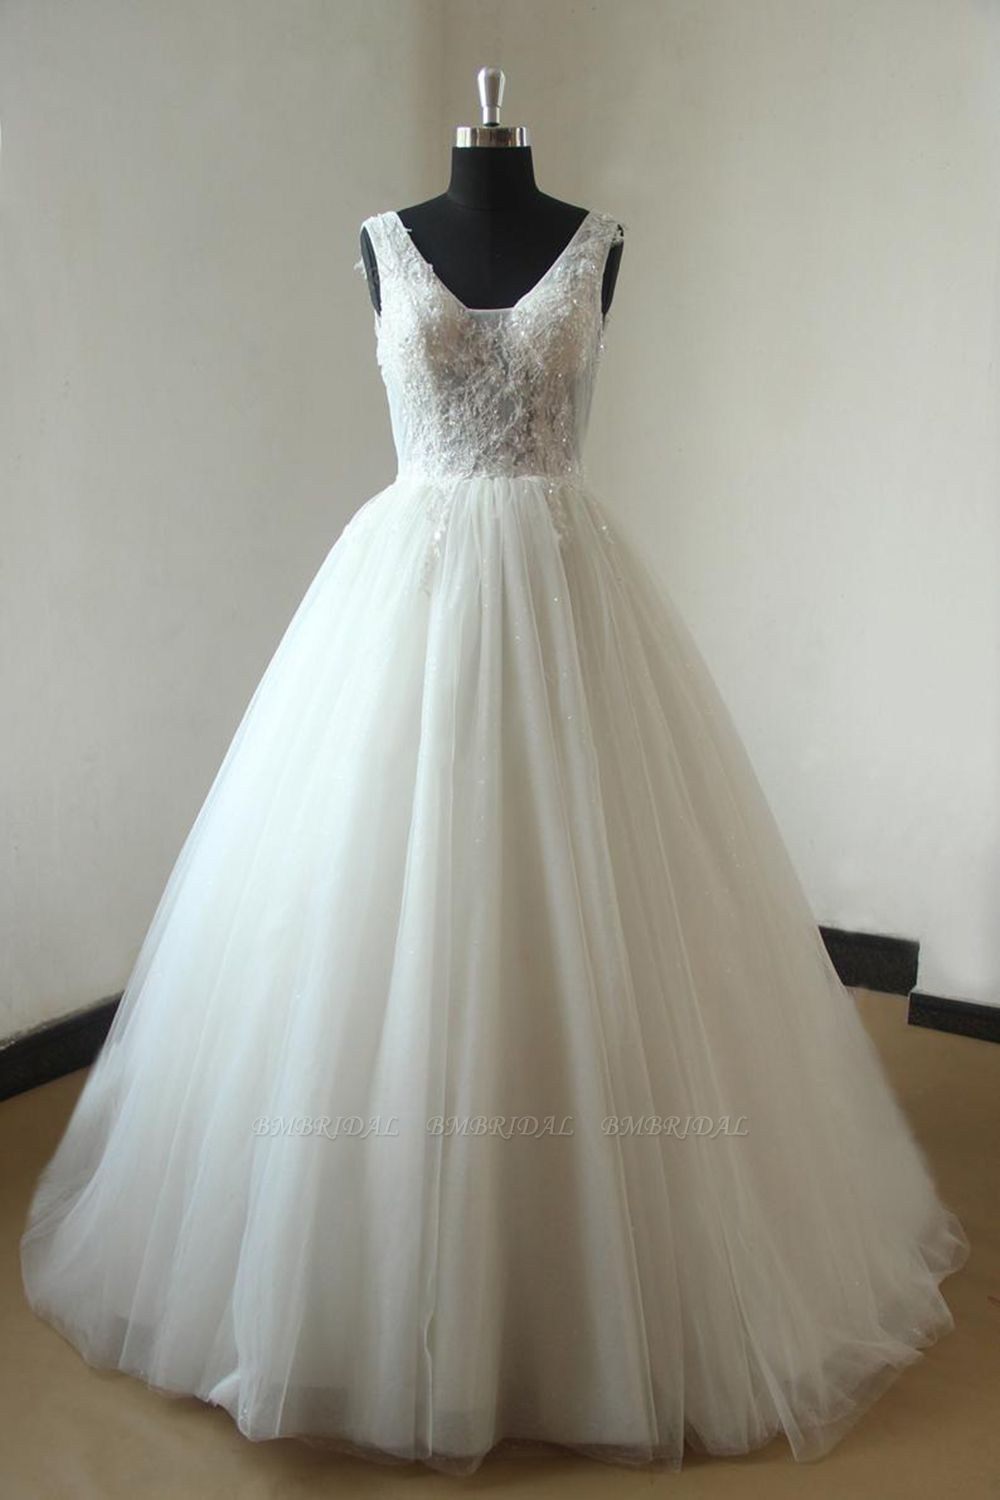 BMbridal Gorgeous V-neck Sleeveless Appliques Wedding Dress White Ball Gown Tulle Bridal Gowns On Sale